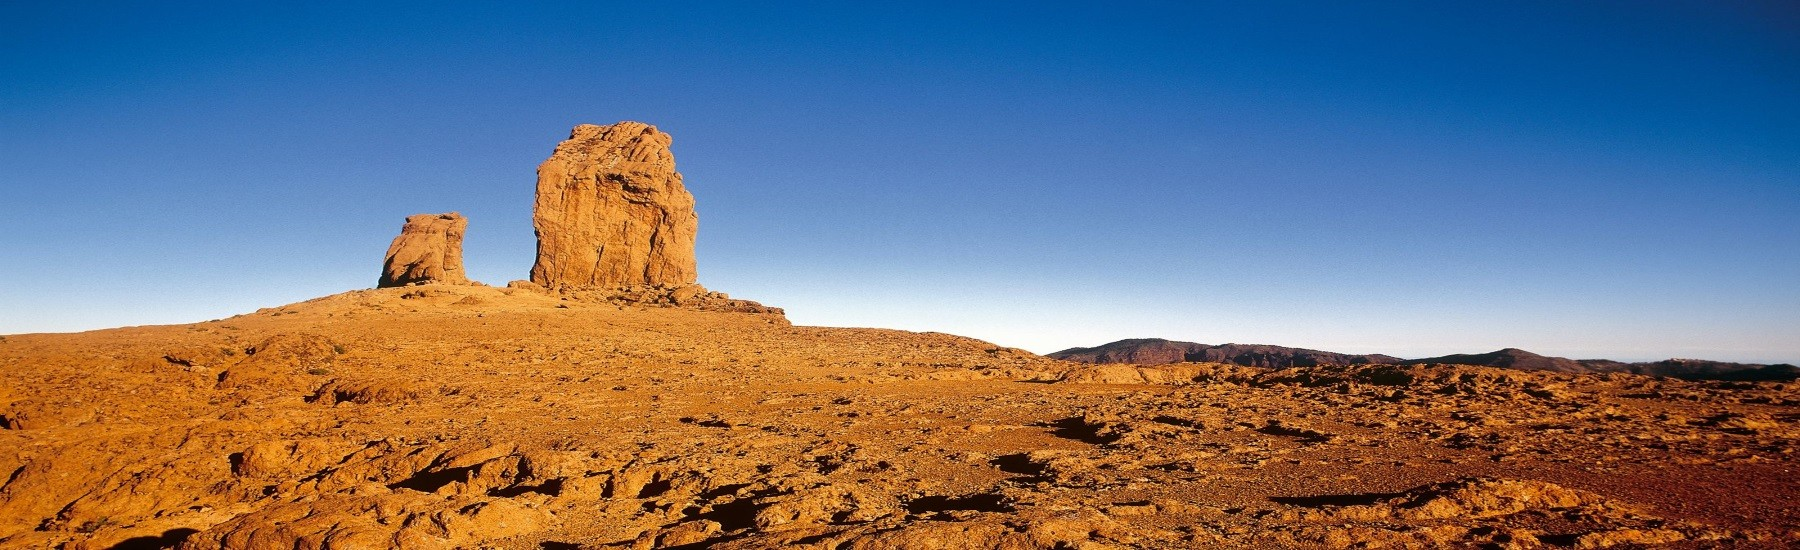 Roque Nublo in Gran Canaria tours